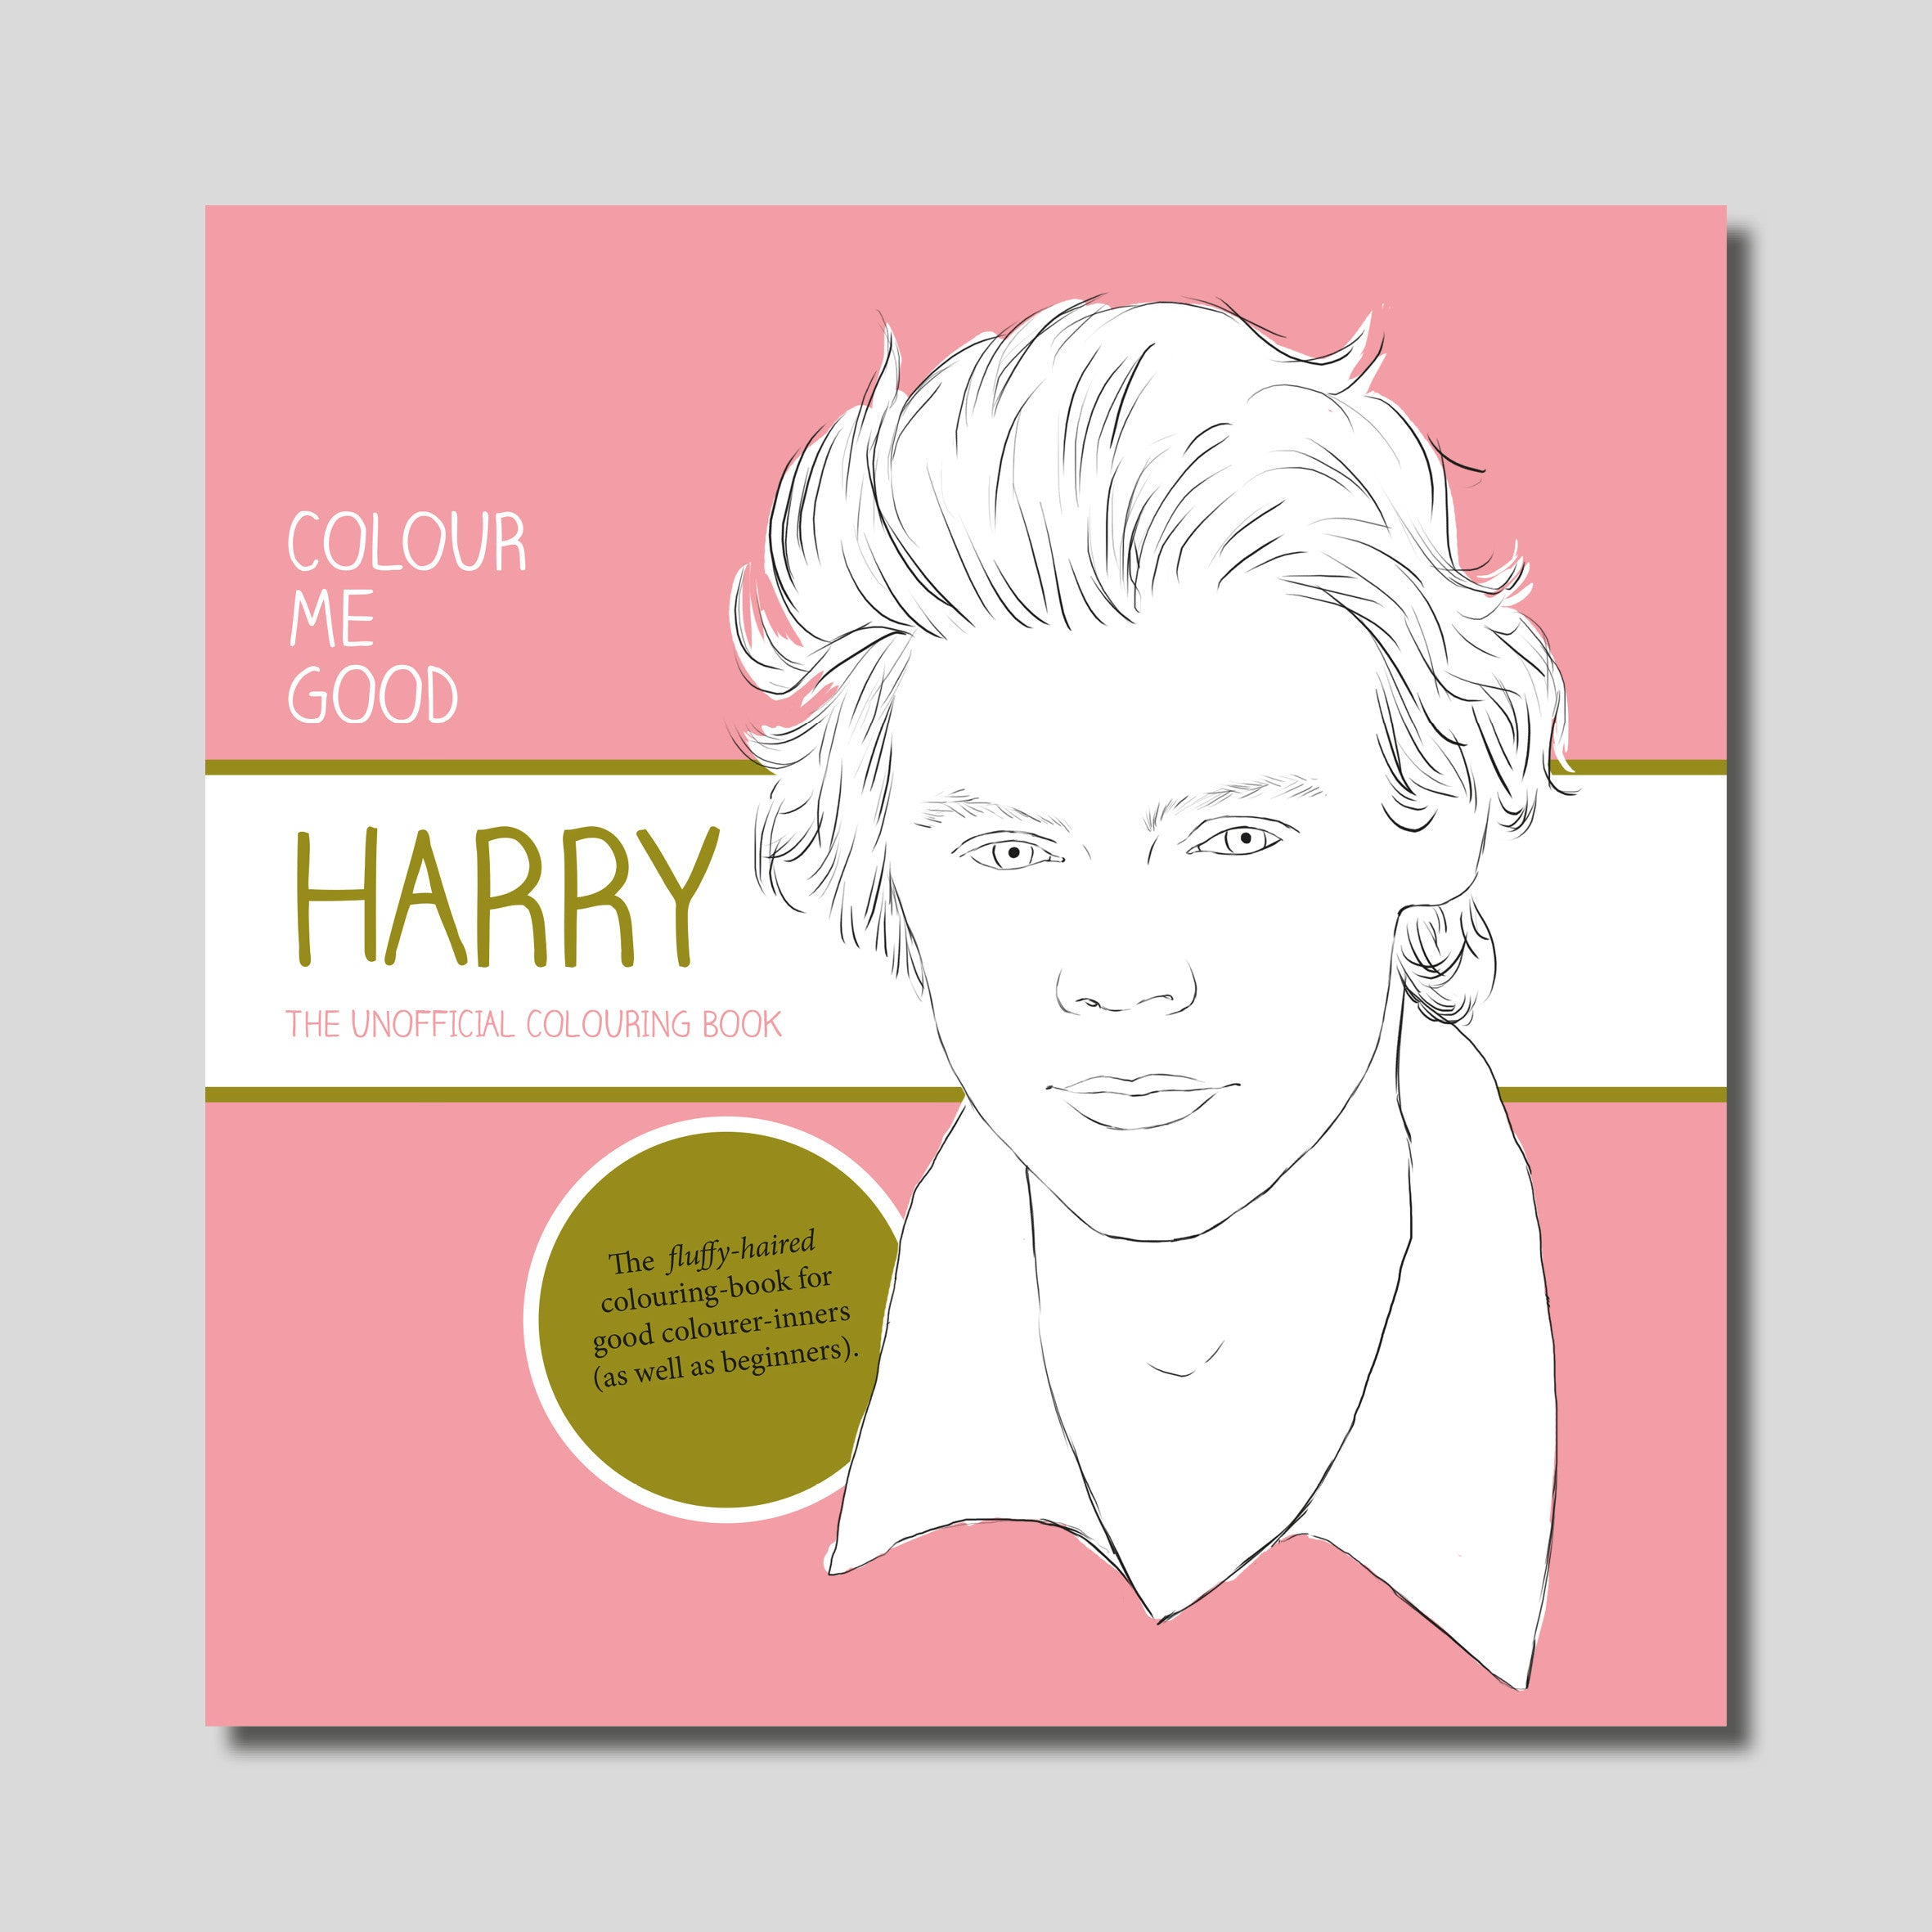 COLOUR ME GOOD HARRY colouring book